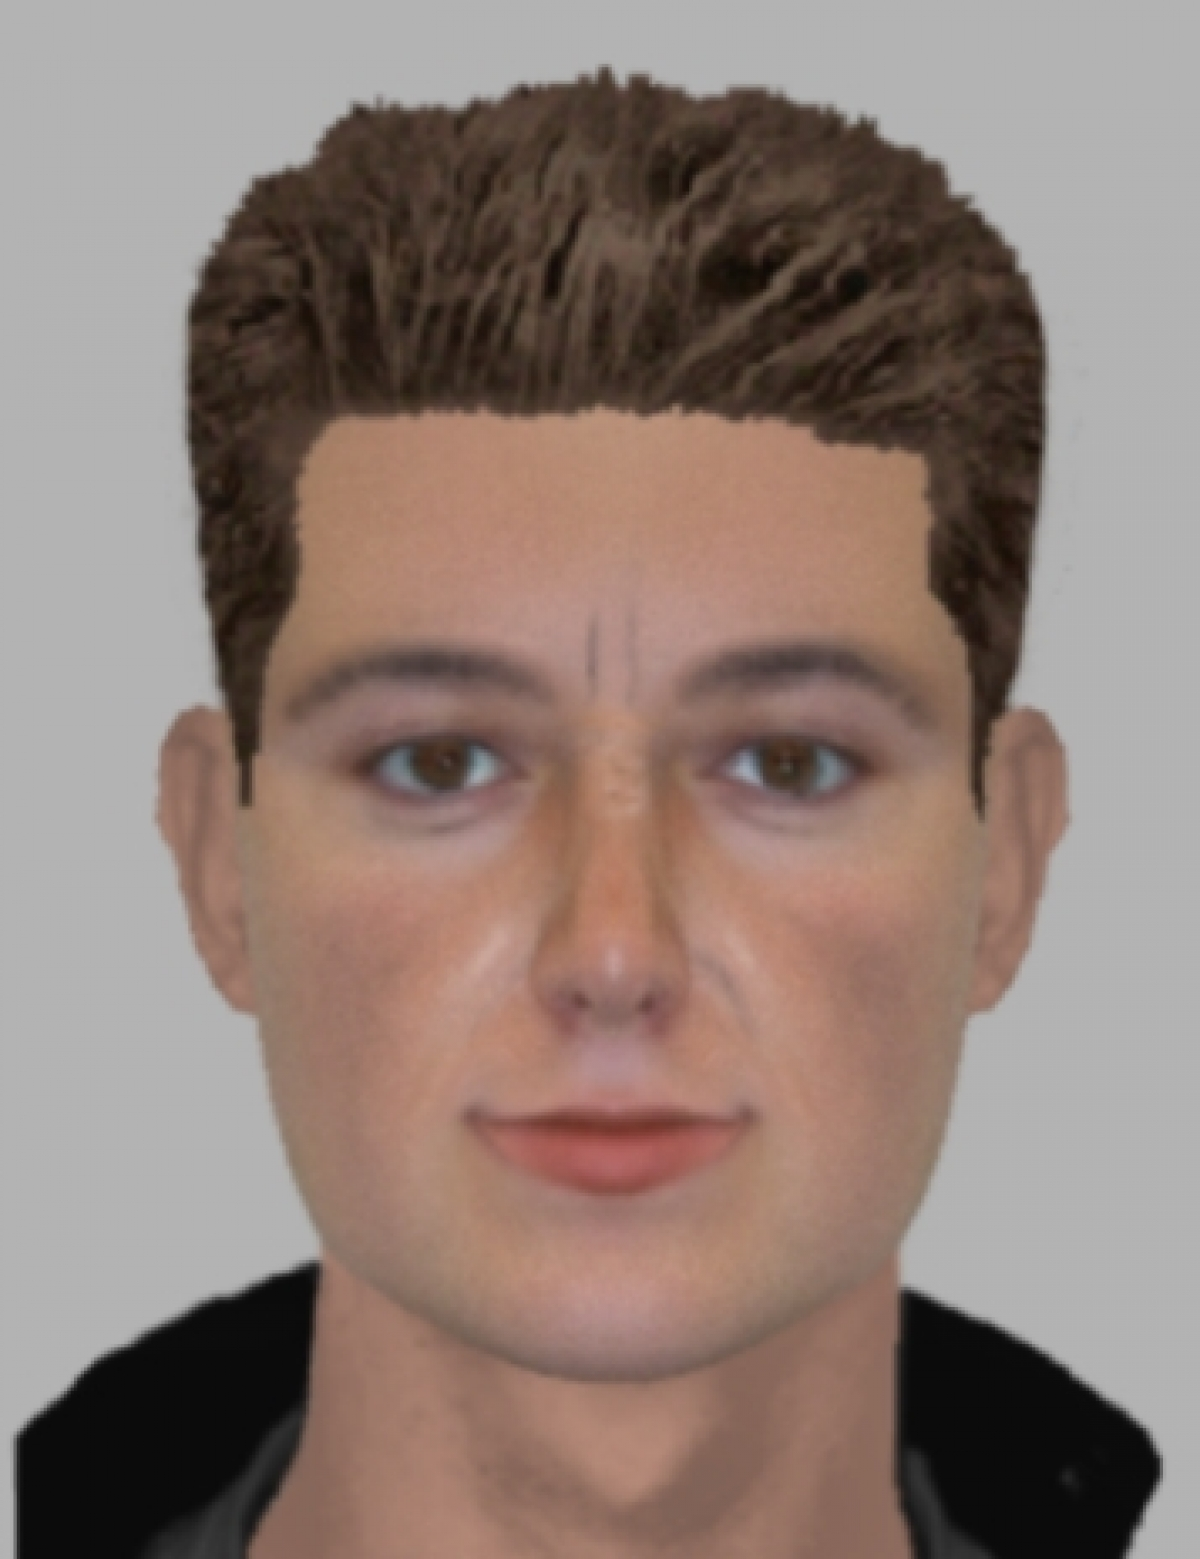 Police efit of the main perpetrator